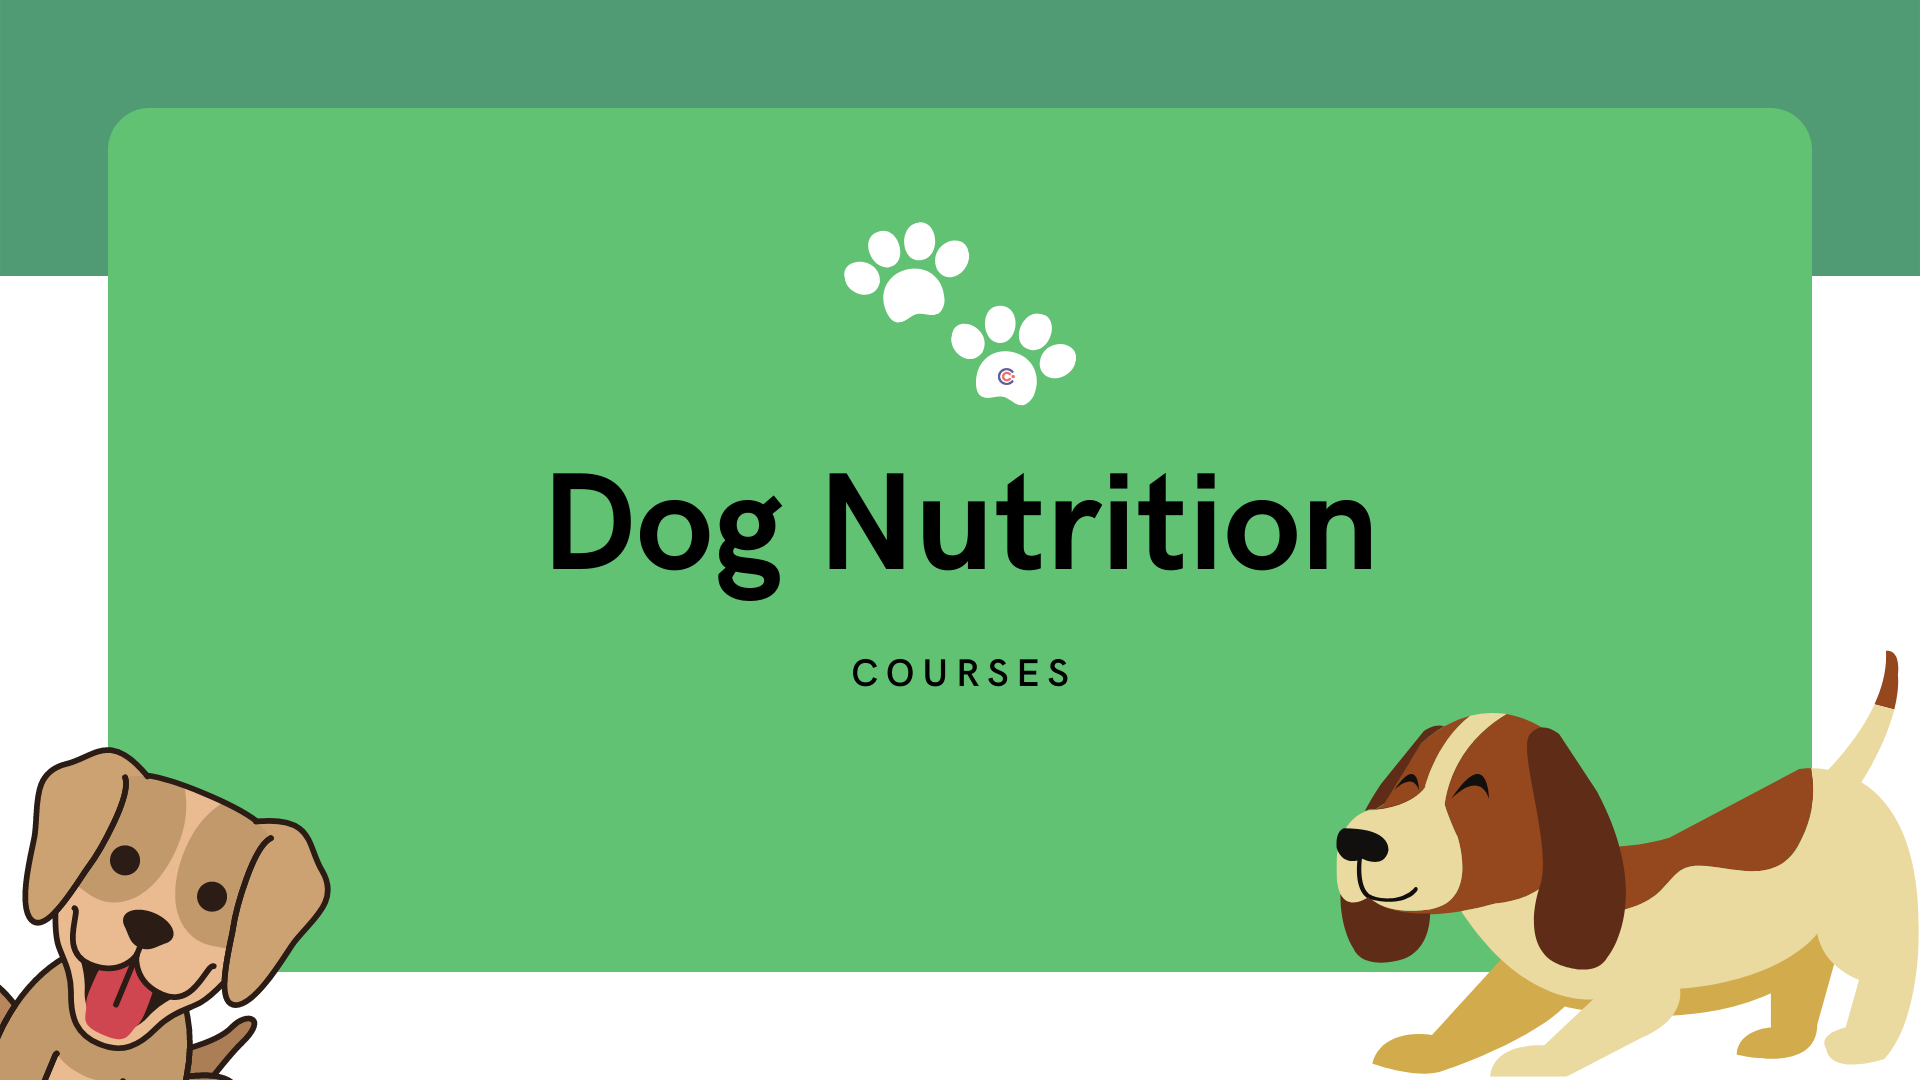 5 Best Dog Nutrition Courses - Learn How to Nutrition Your Dog Online!